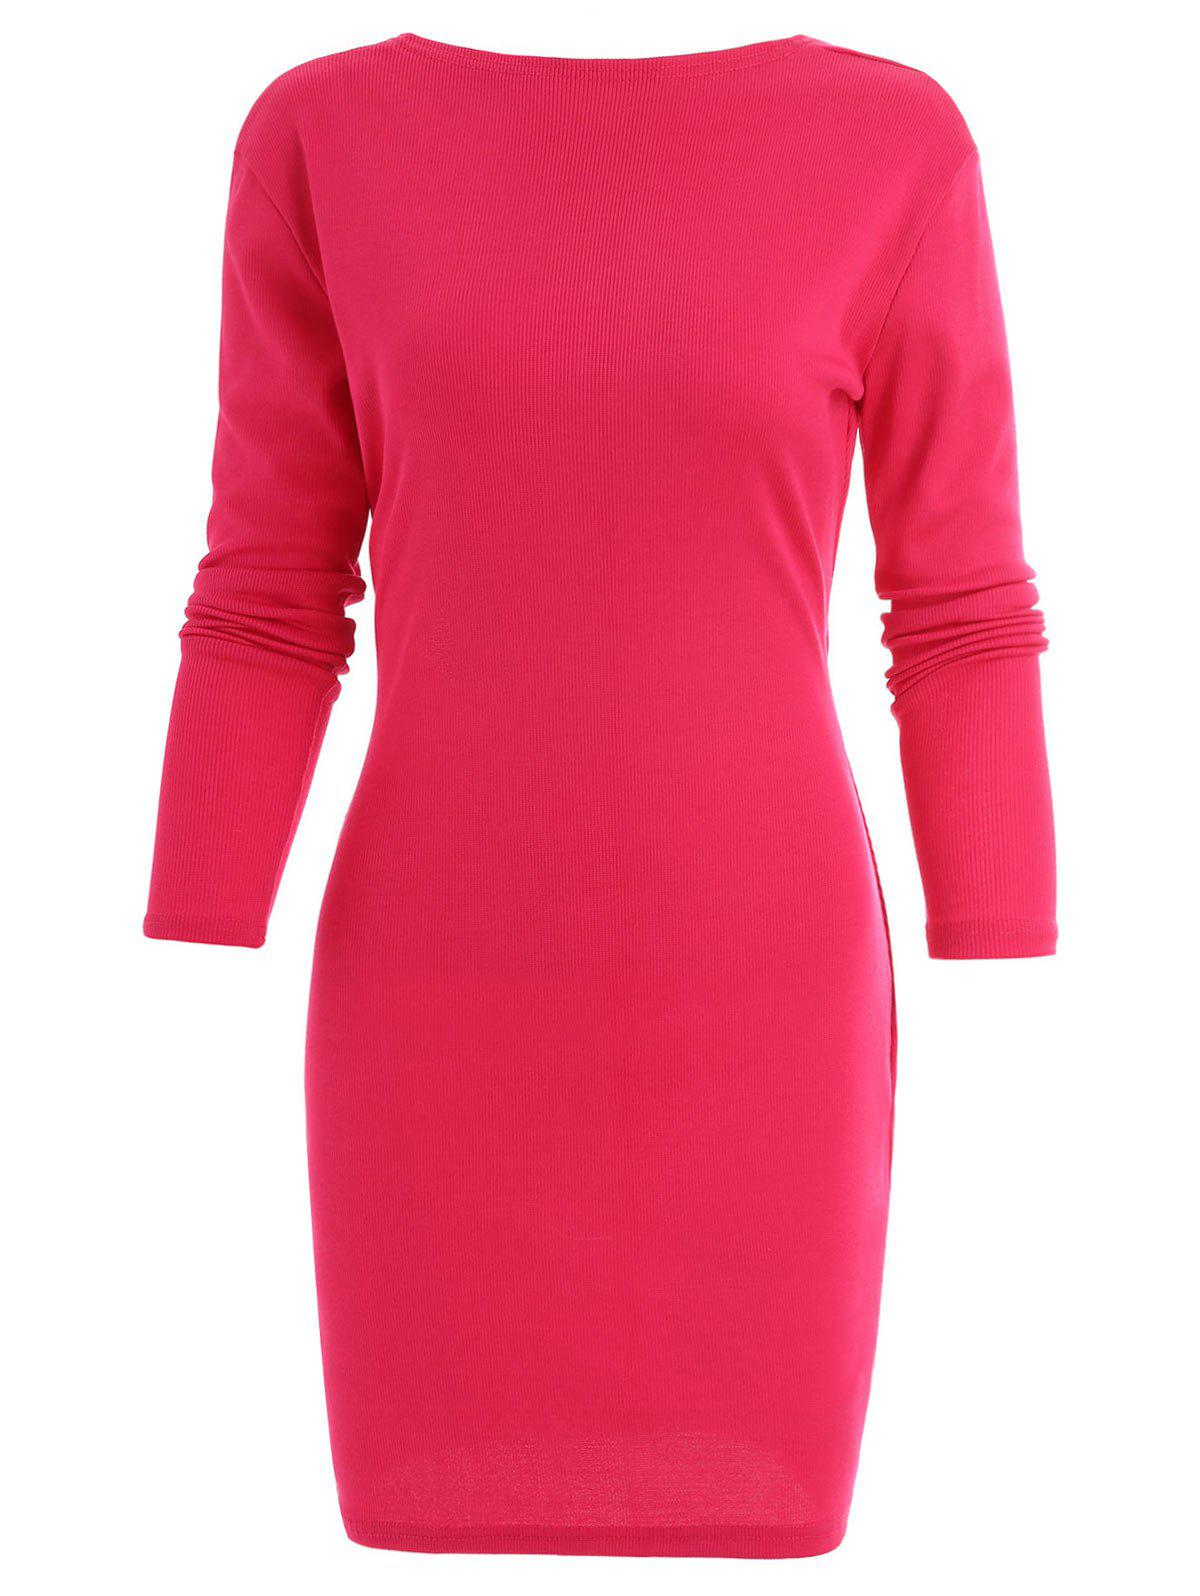 Tied Cut Out Mini Bodycon Dress - ROSE RED L